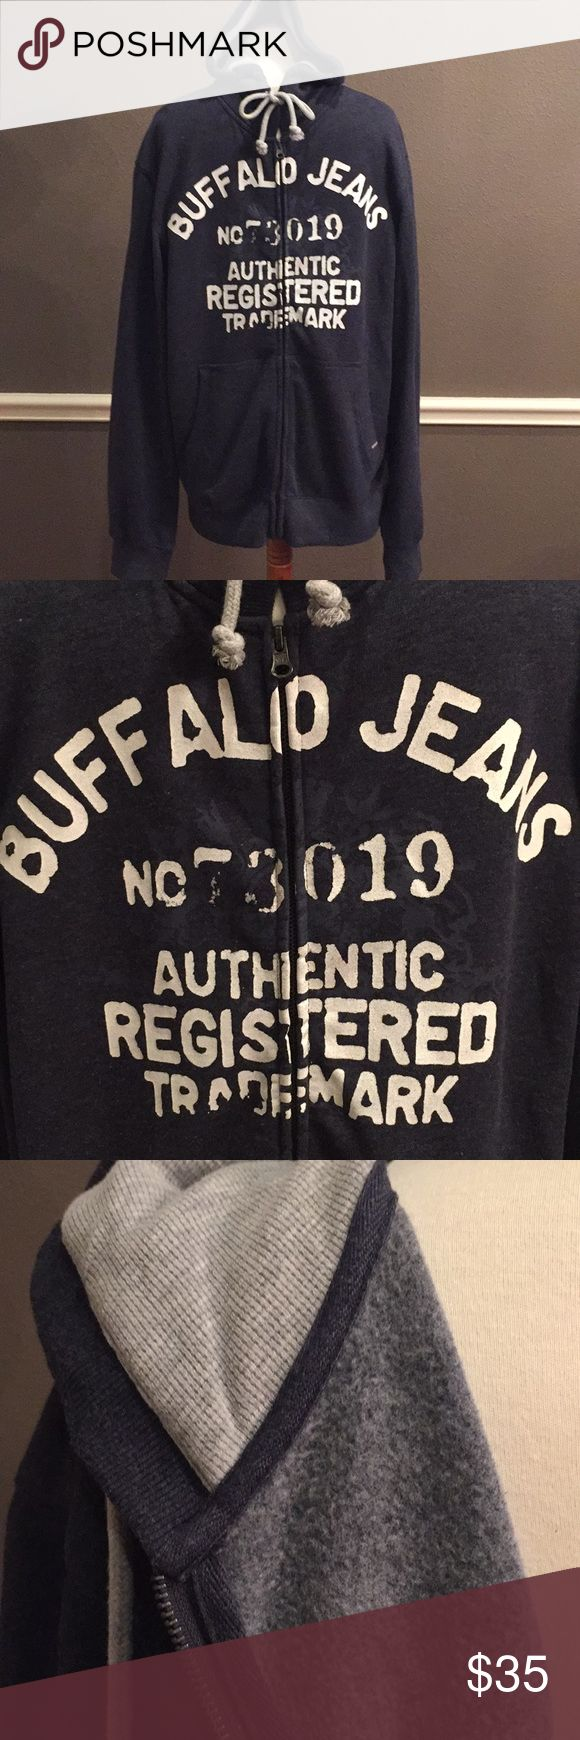 Men's Buffalo Jeans size large hooded zip jacket Men's Buffalo Jeans brand size large zip up sweatshirt.  Full zip. Blue. Great condition. Worn once or twice. Soft inside for comfort. Hood has thermal lining. Very nice. i jeans by Buffalo Shirts Sweatshirts & Hoodies